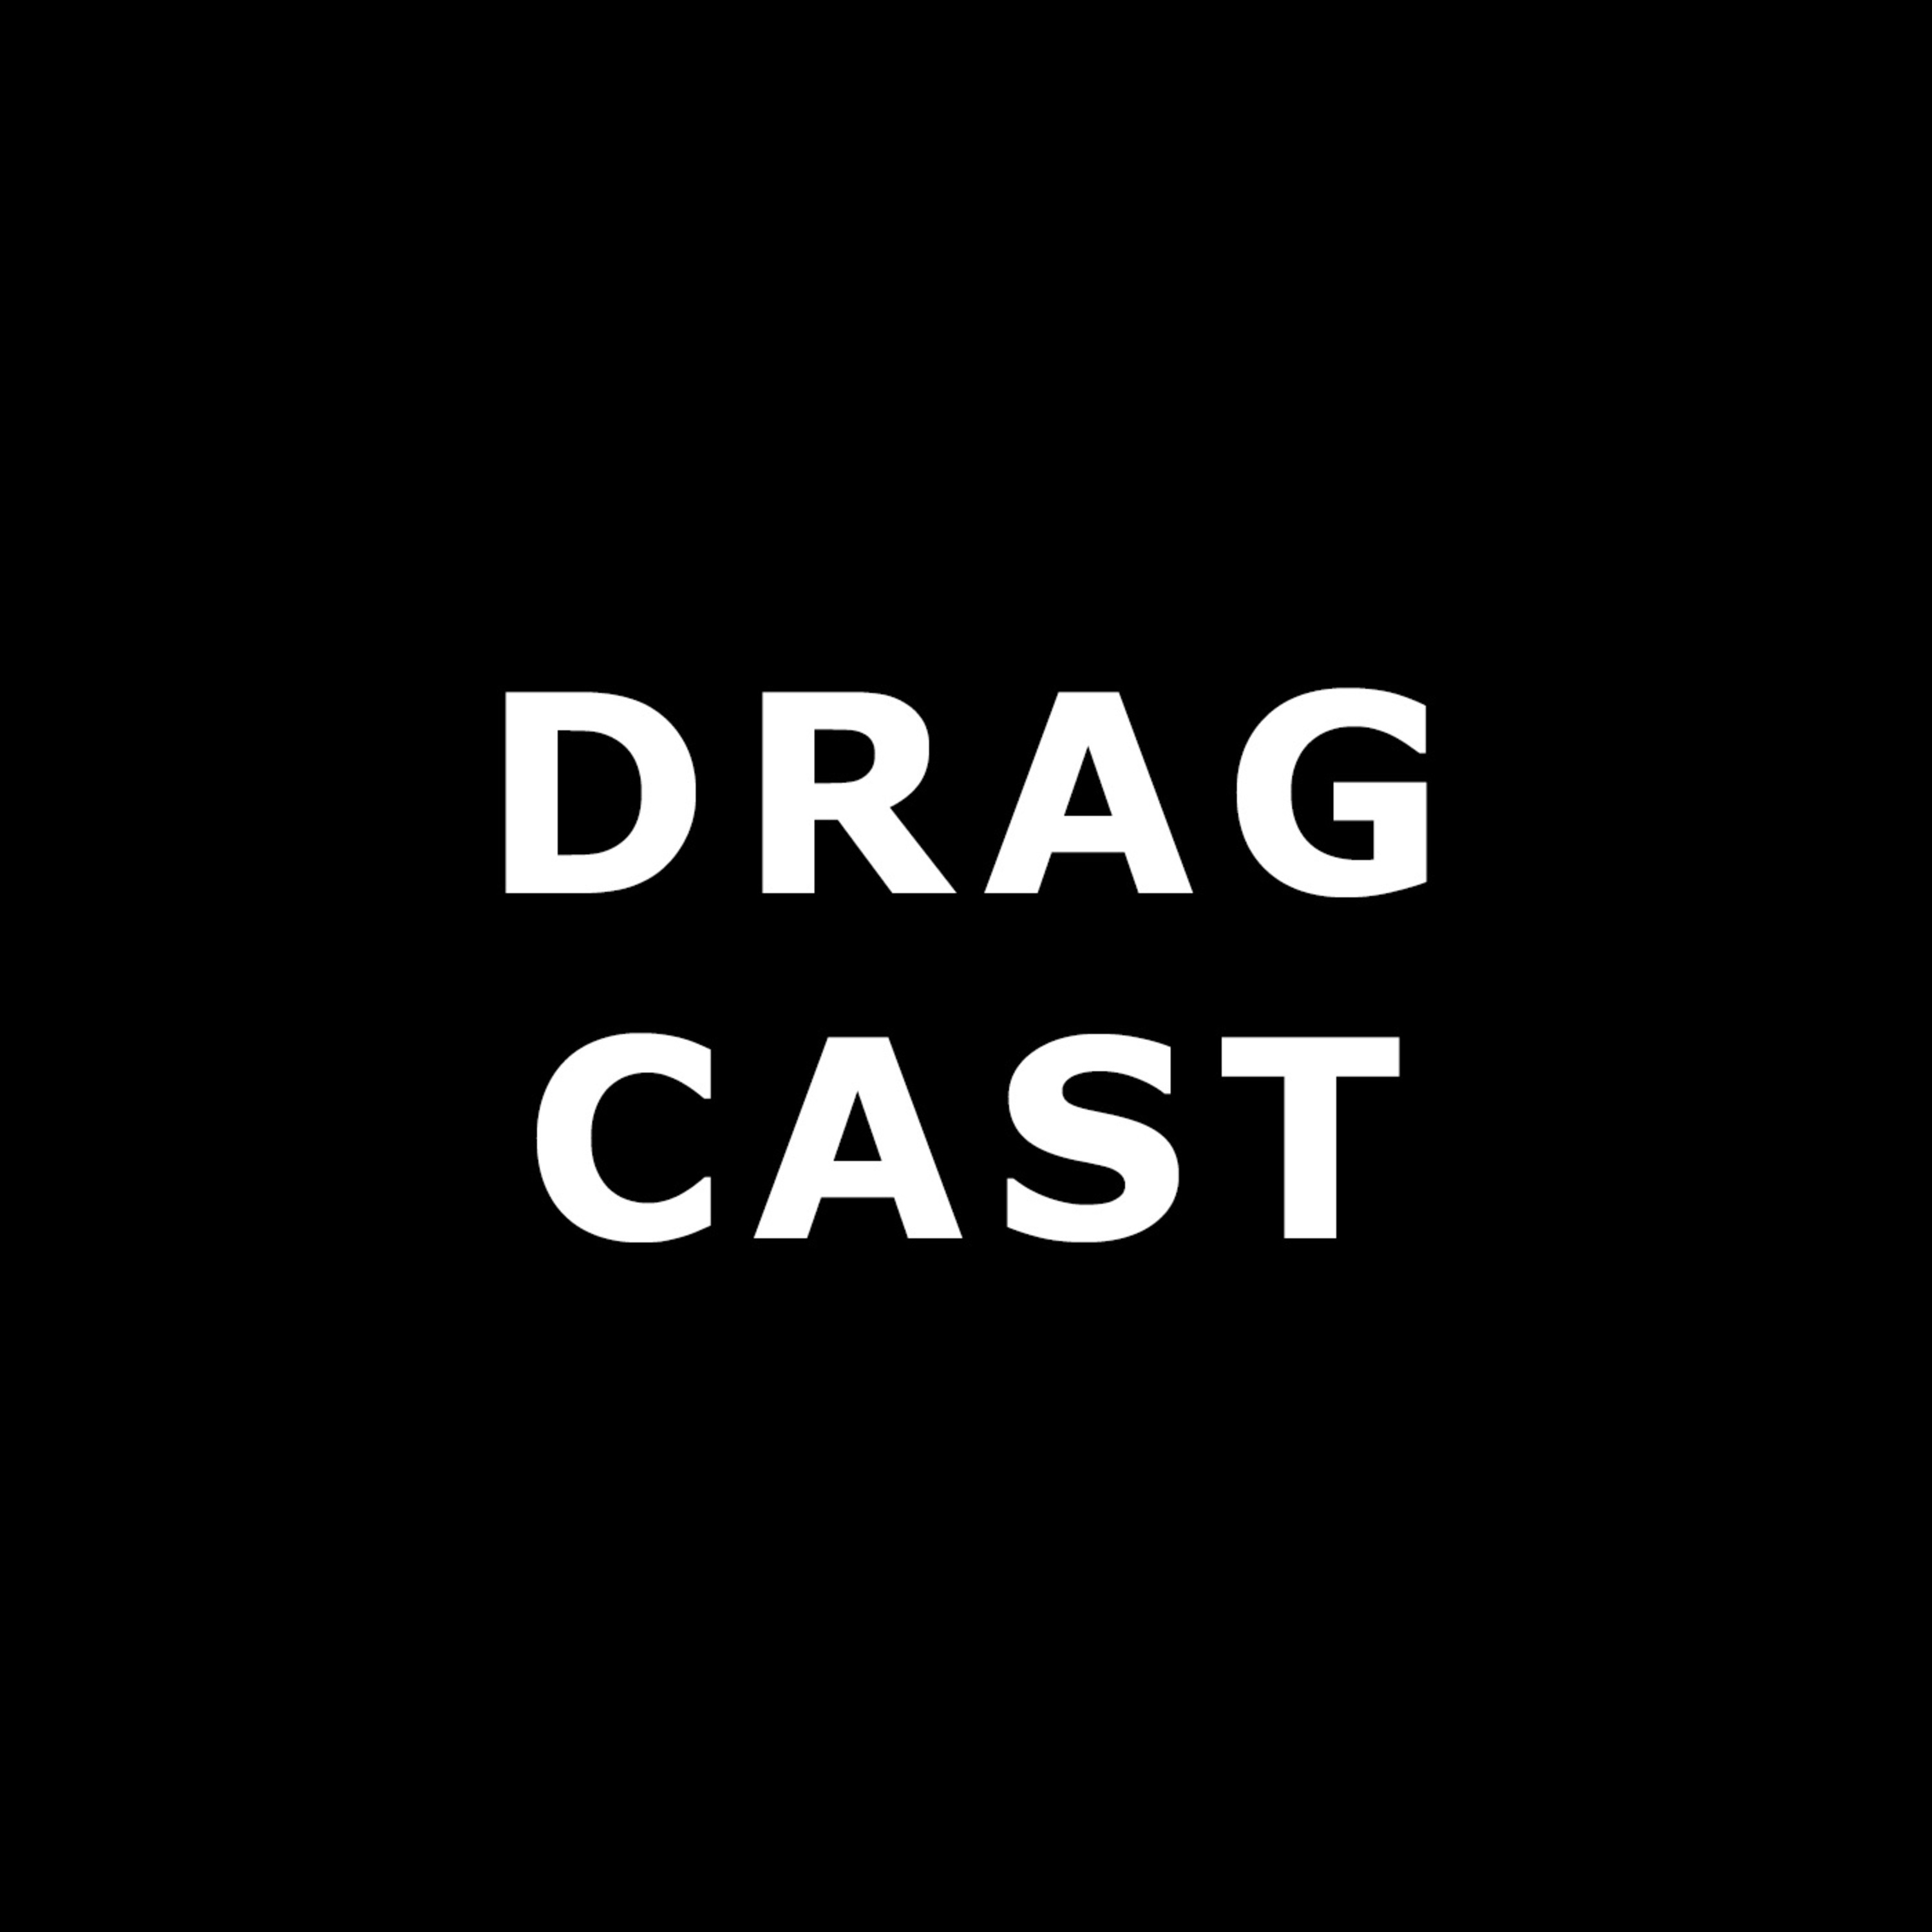 002 An introduction to Dragcast